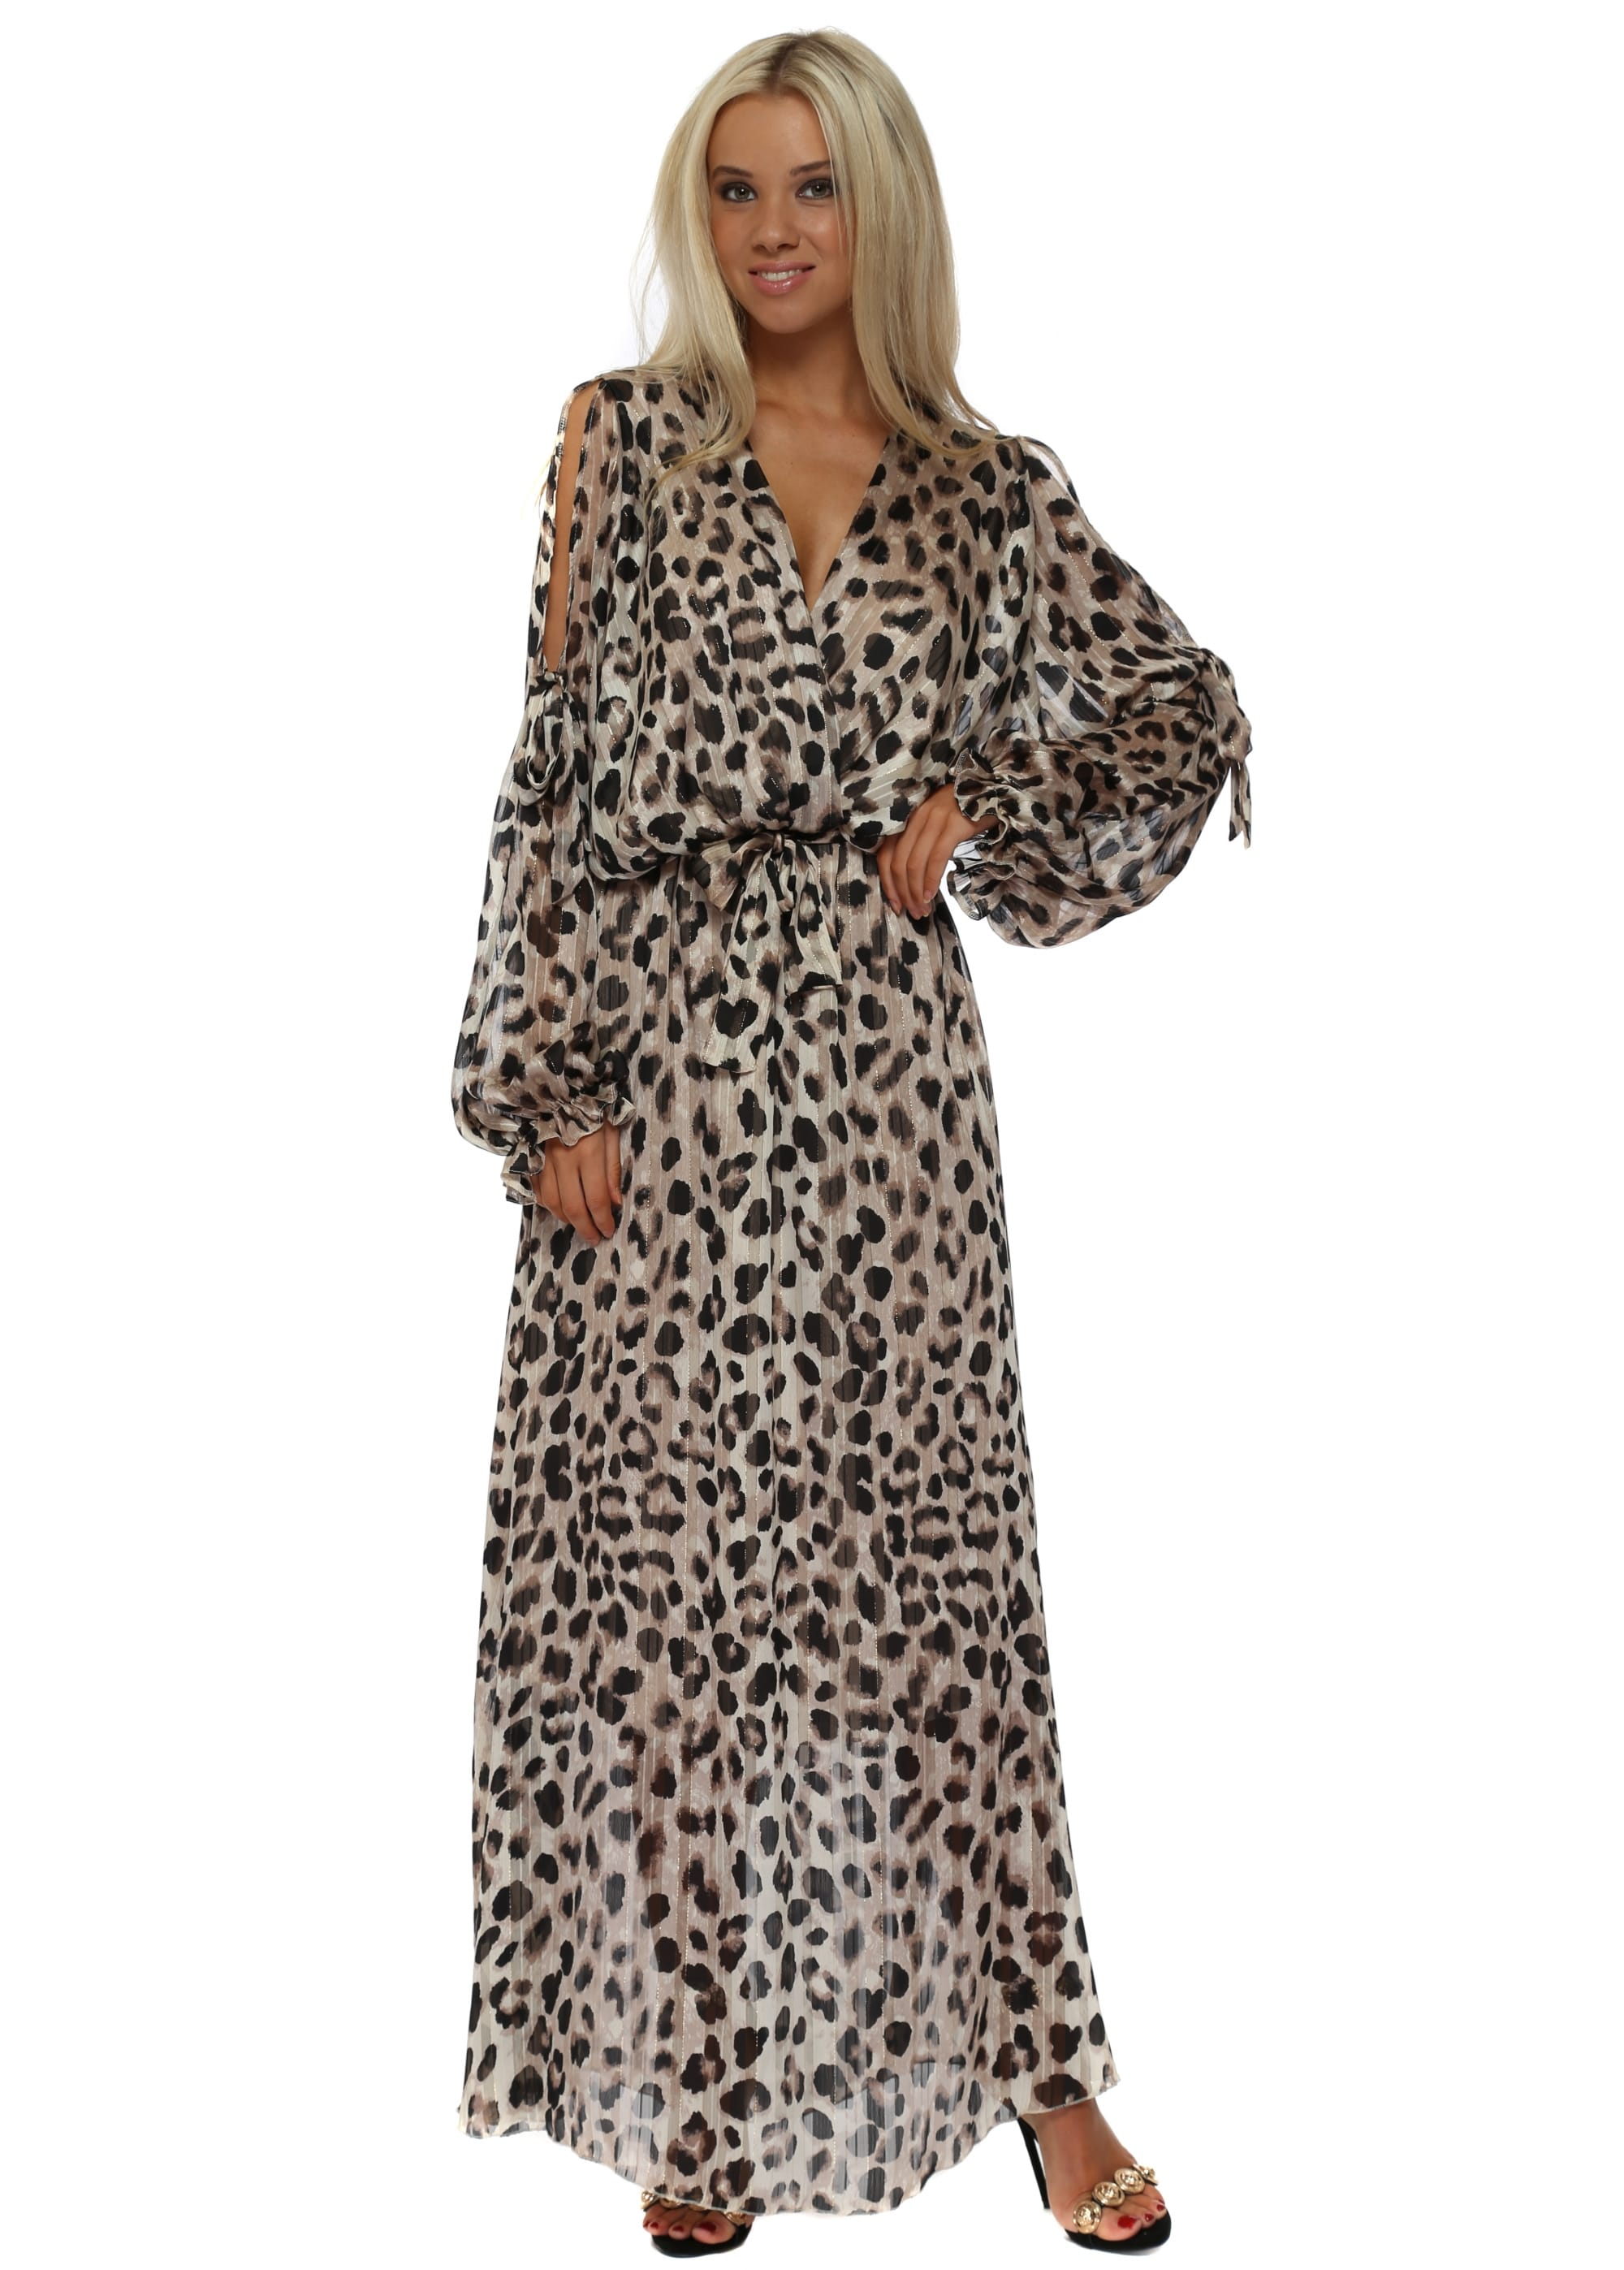 Go for a long, flowing dress to complement the ethereal look of an animal print. Or get the best of both lengths in a high-low hem dress. Cool details like a layered skirt or sheer lace fabric lend plenty of fashionable flair. Also look for maxi dress styles to get that longer length.